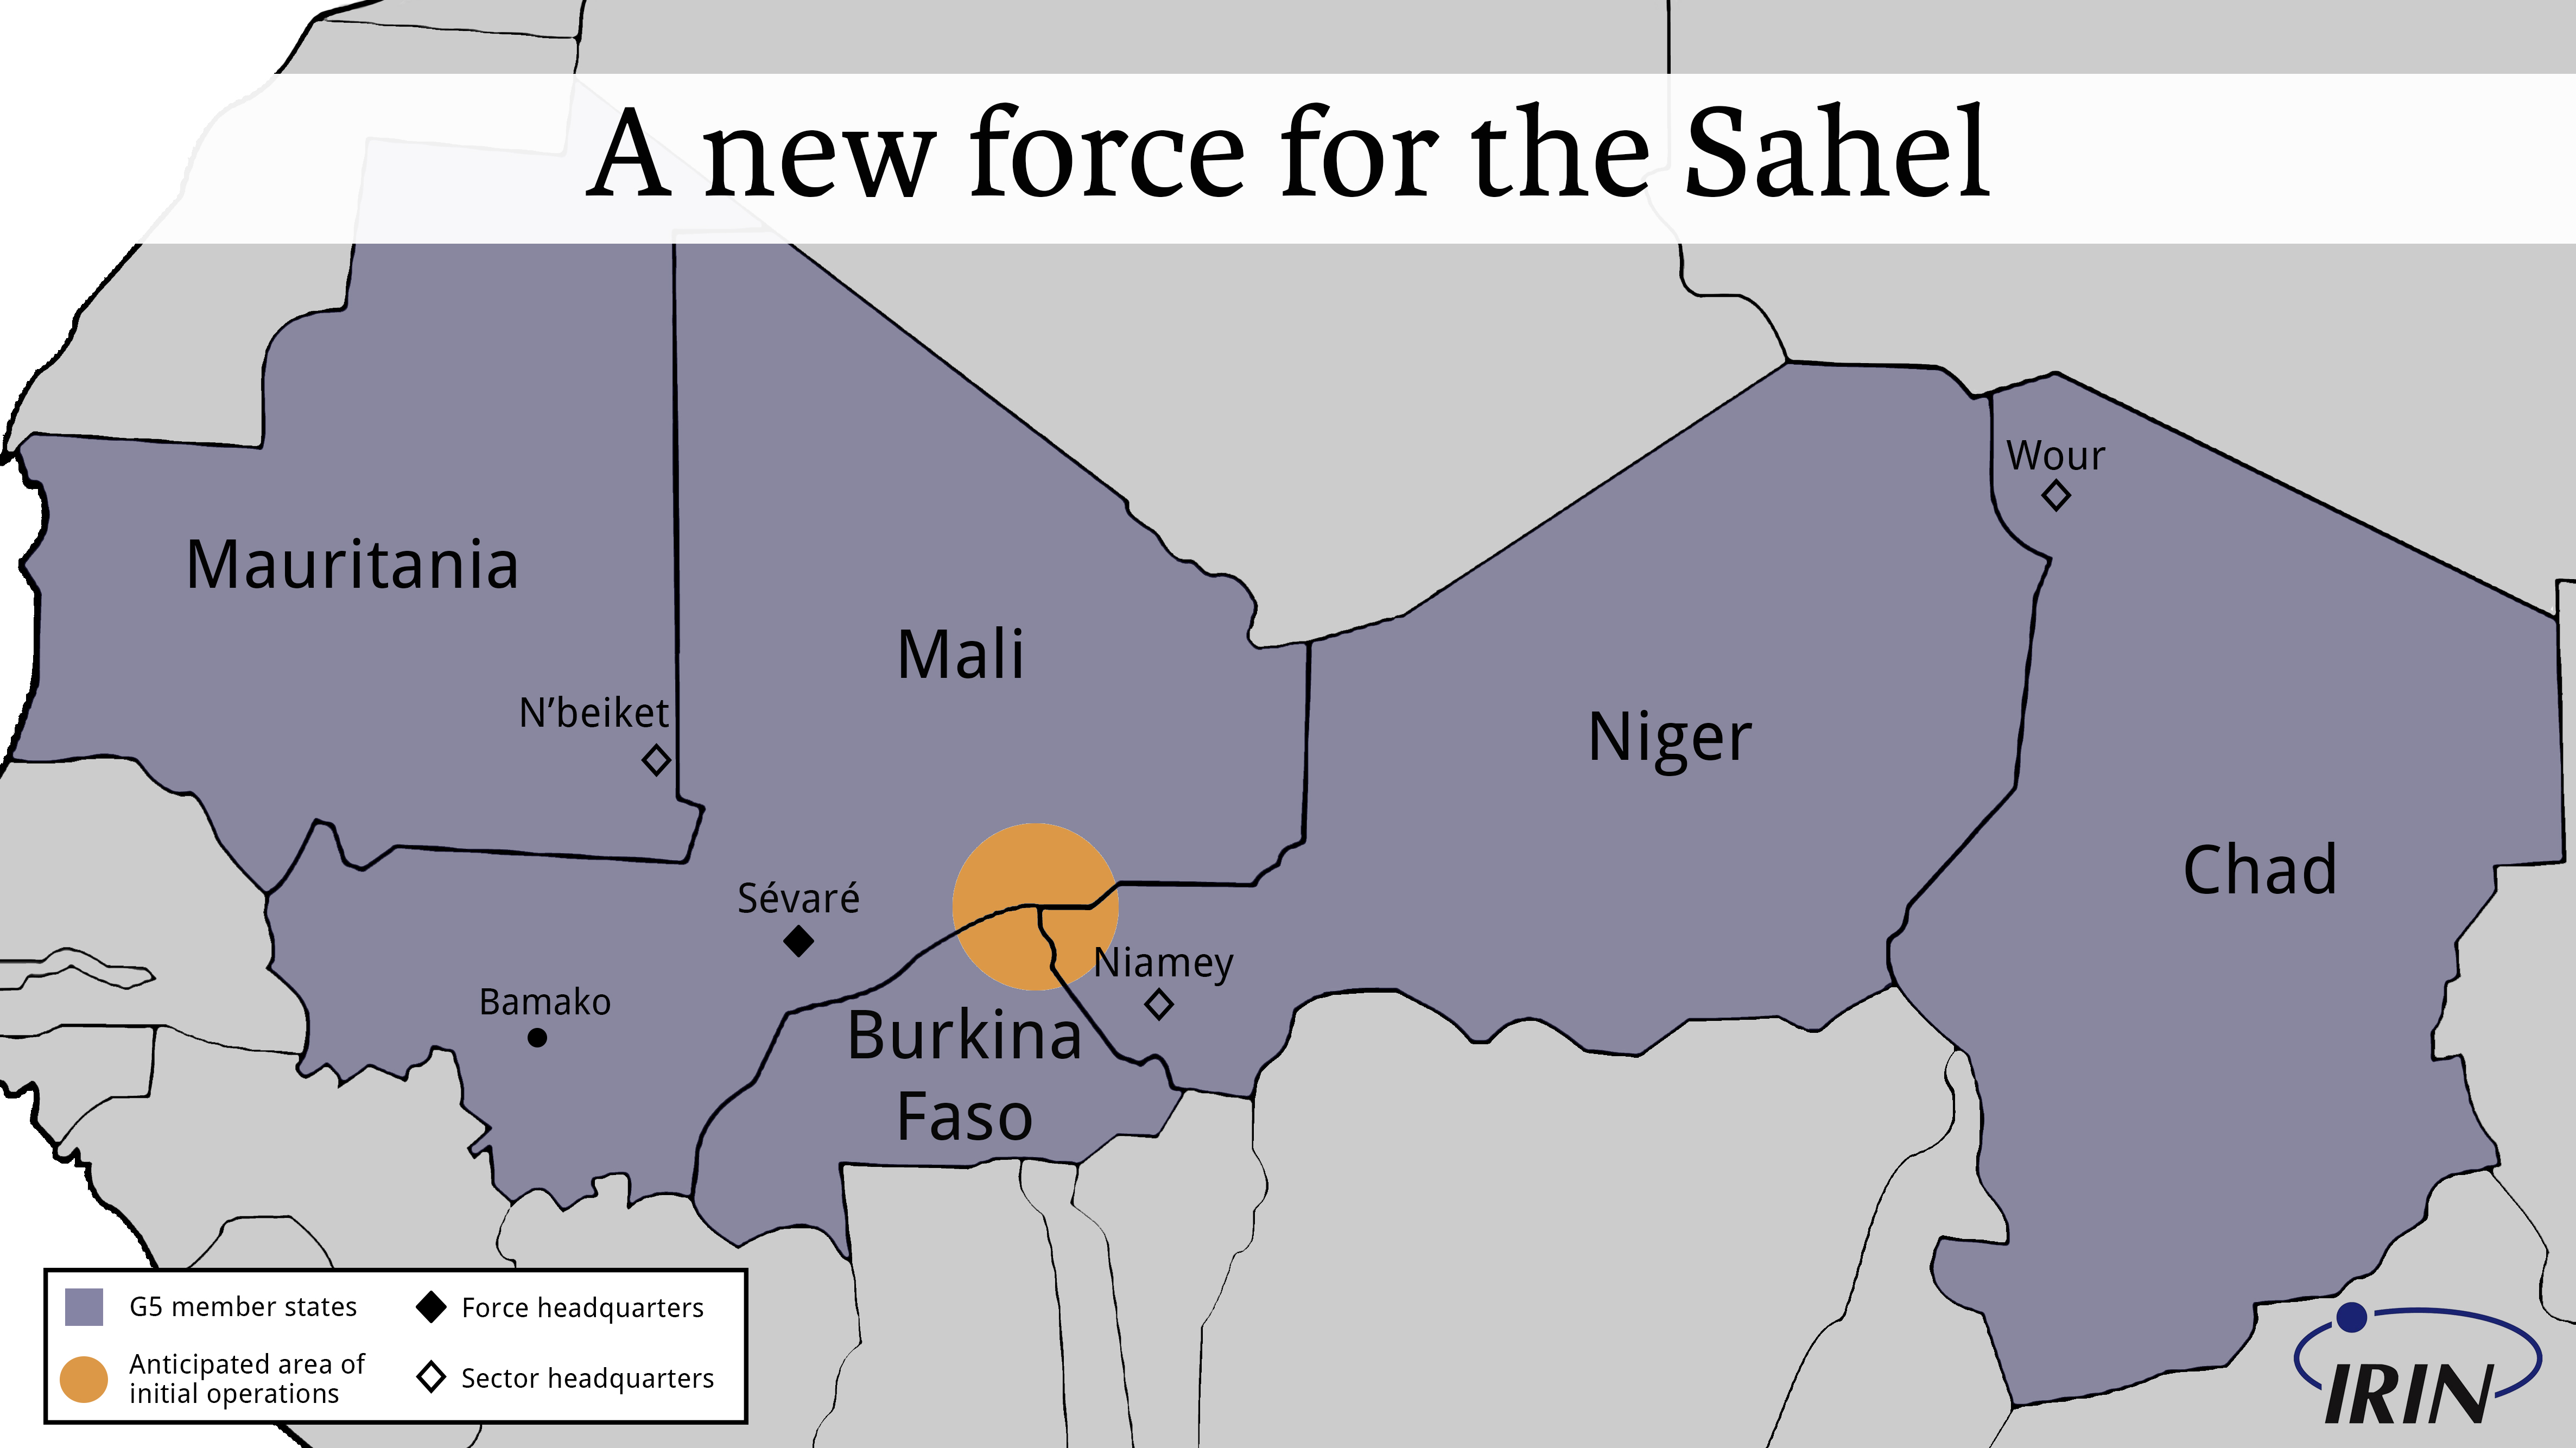 Map of the G5 Sahel Bloc territory